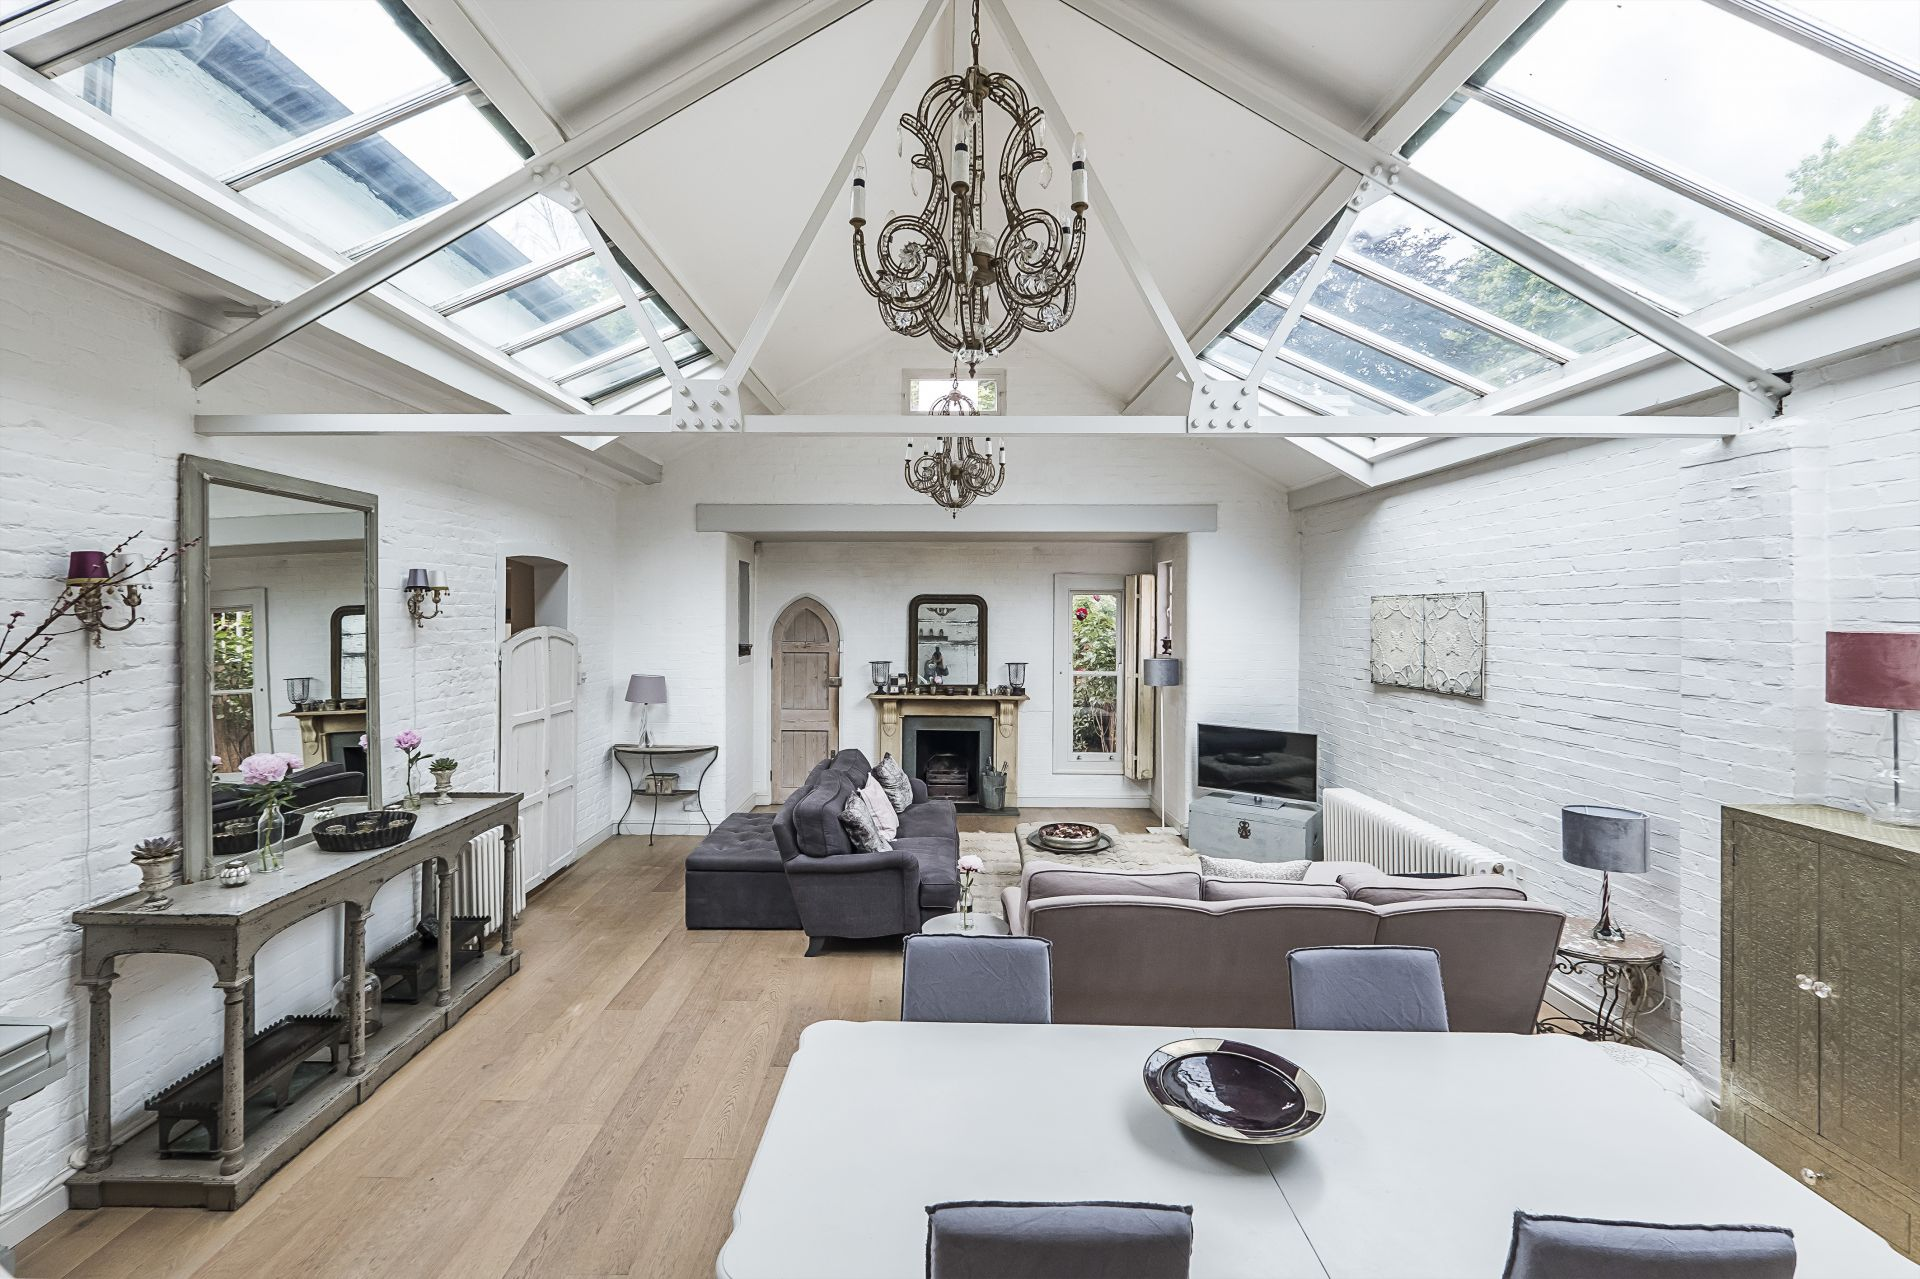 Loft-apartments for sale in London | London Property ...